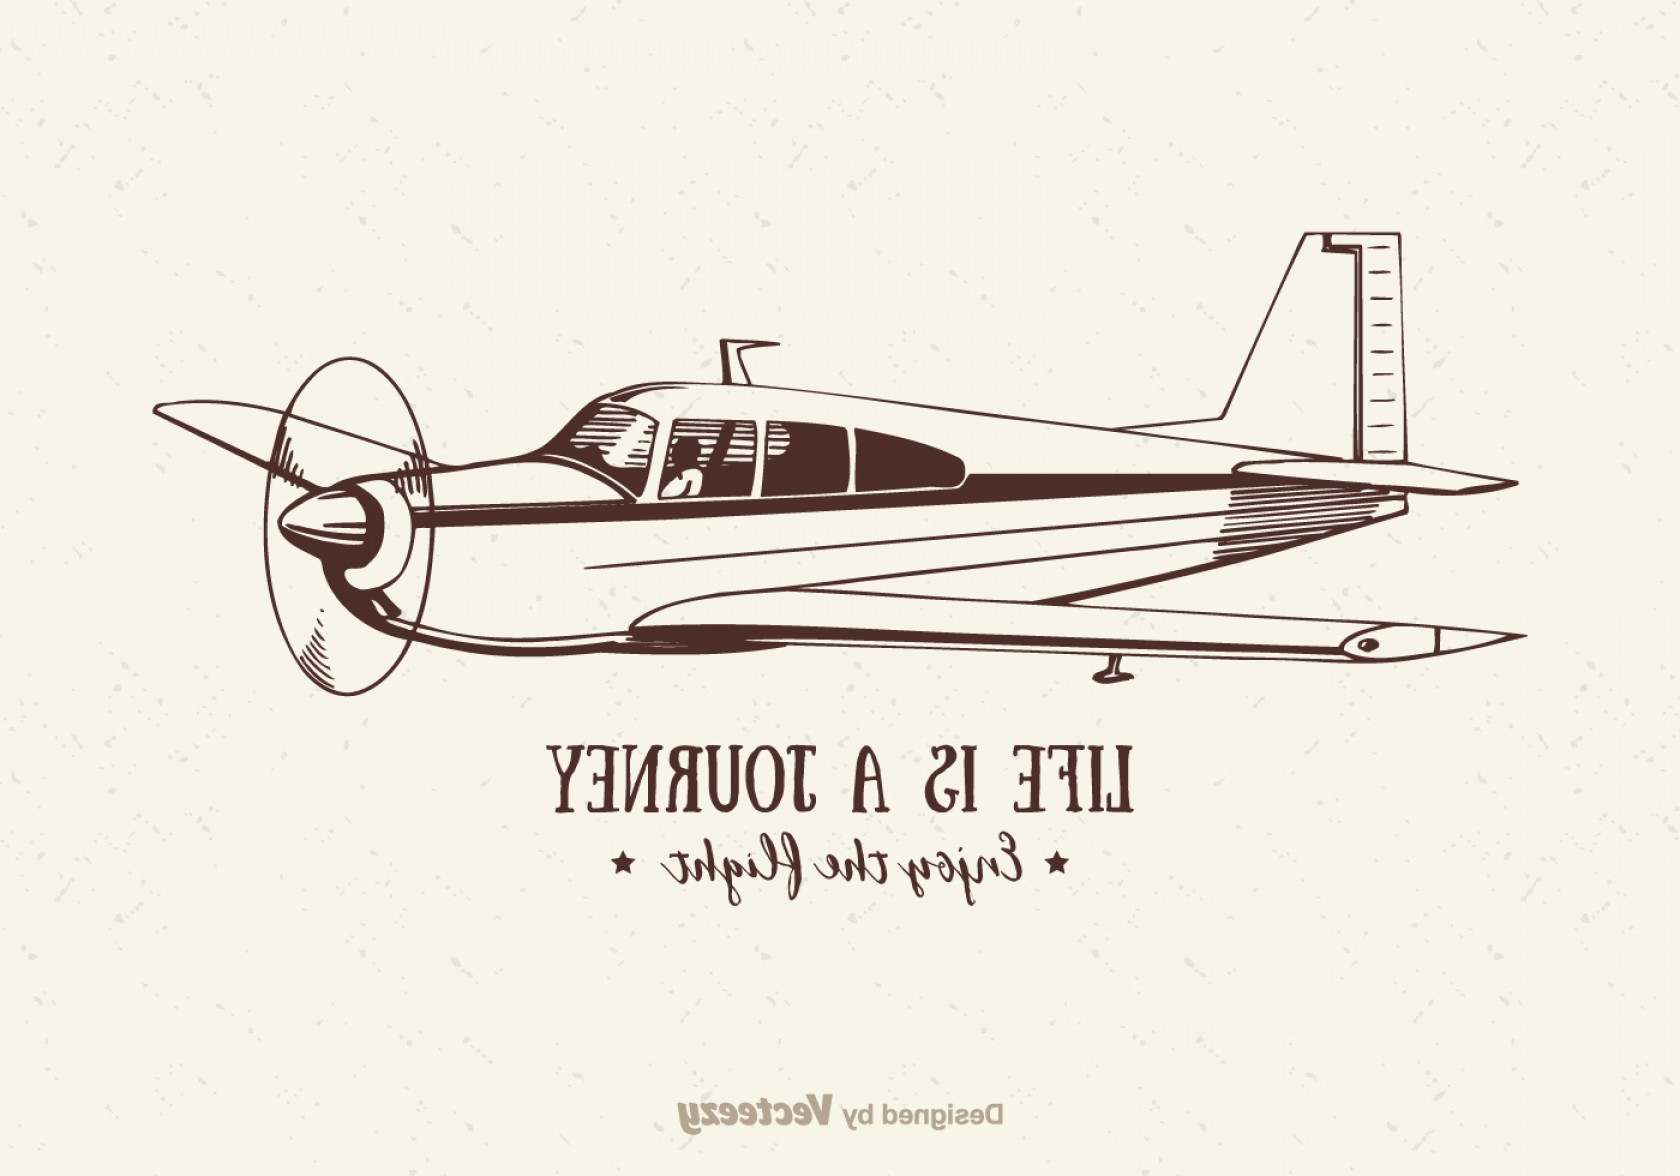 Old School Airplane Fighter Silhouette Vector: Free Vector Vintage Airplane Illustration